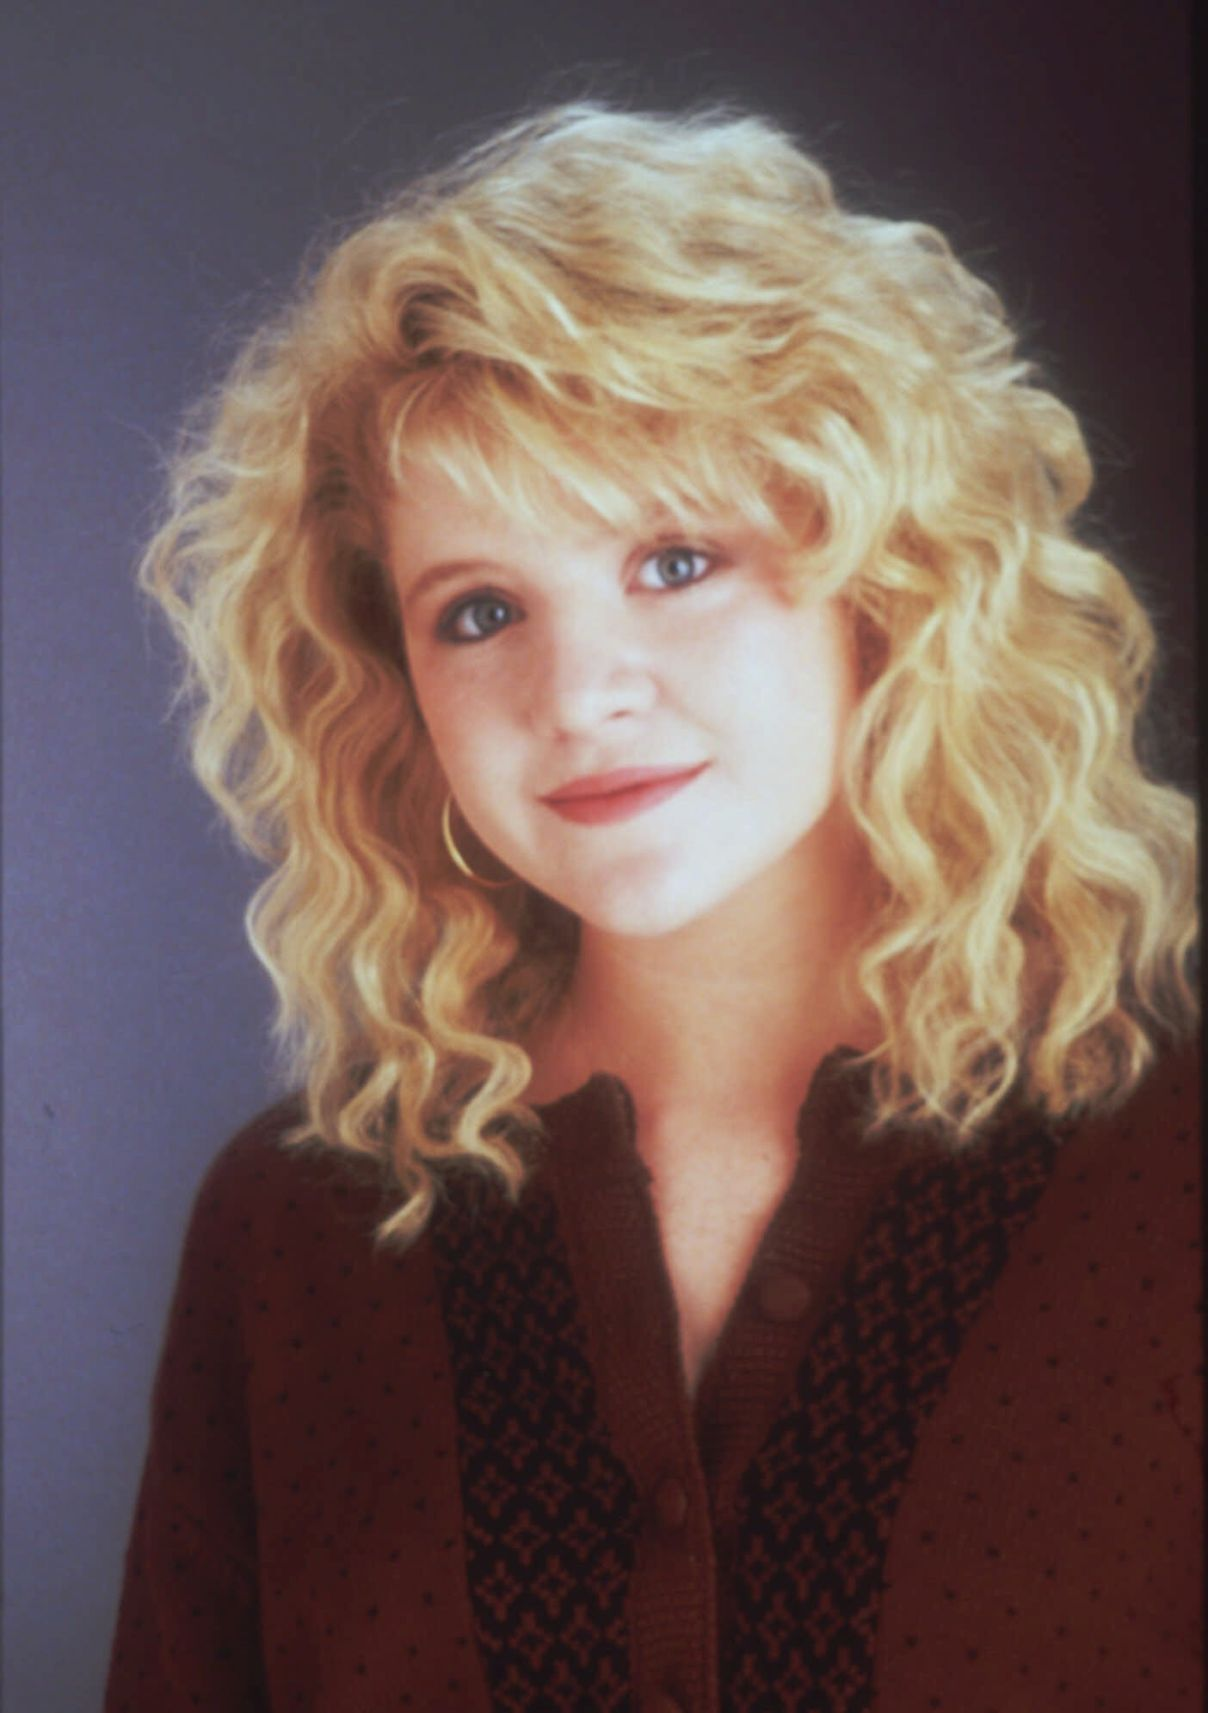 Tina Yothers courtney love